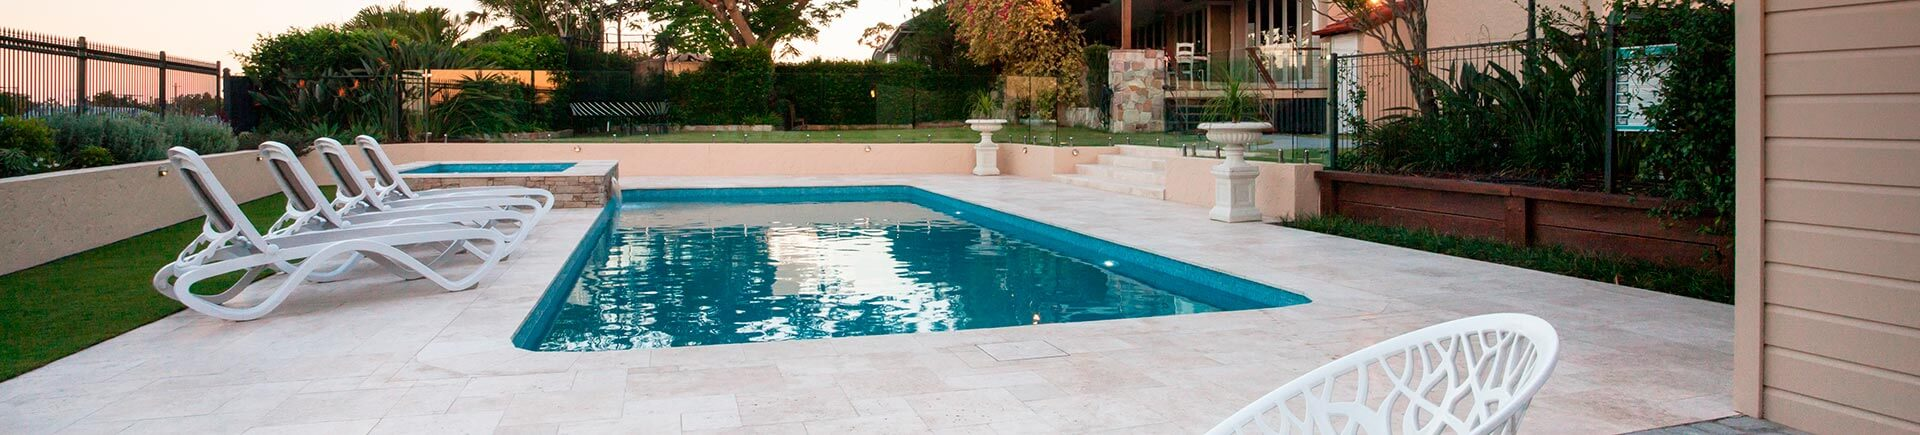 Backyard swimming pool with paver deck after pressure washing